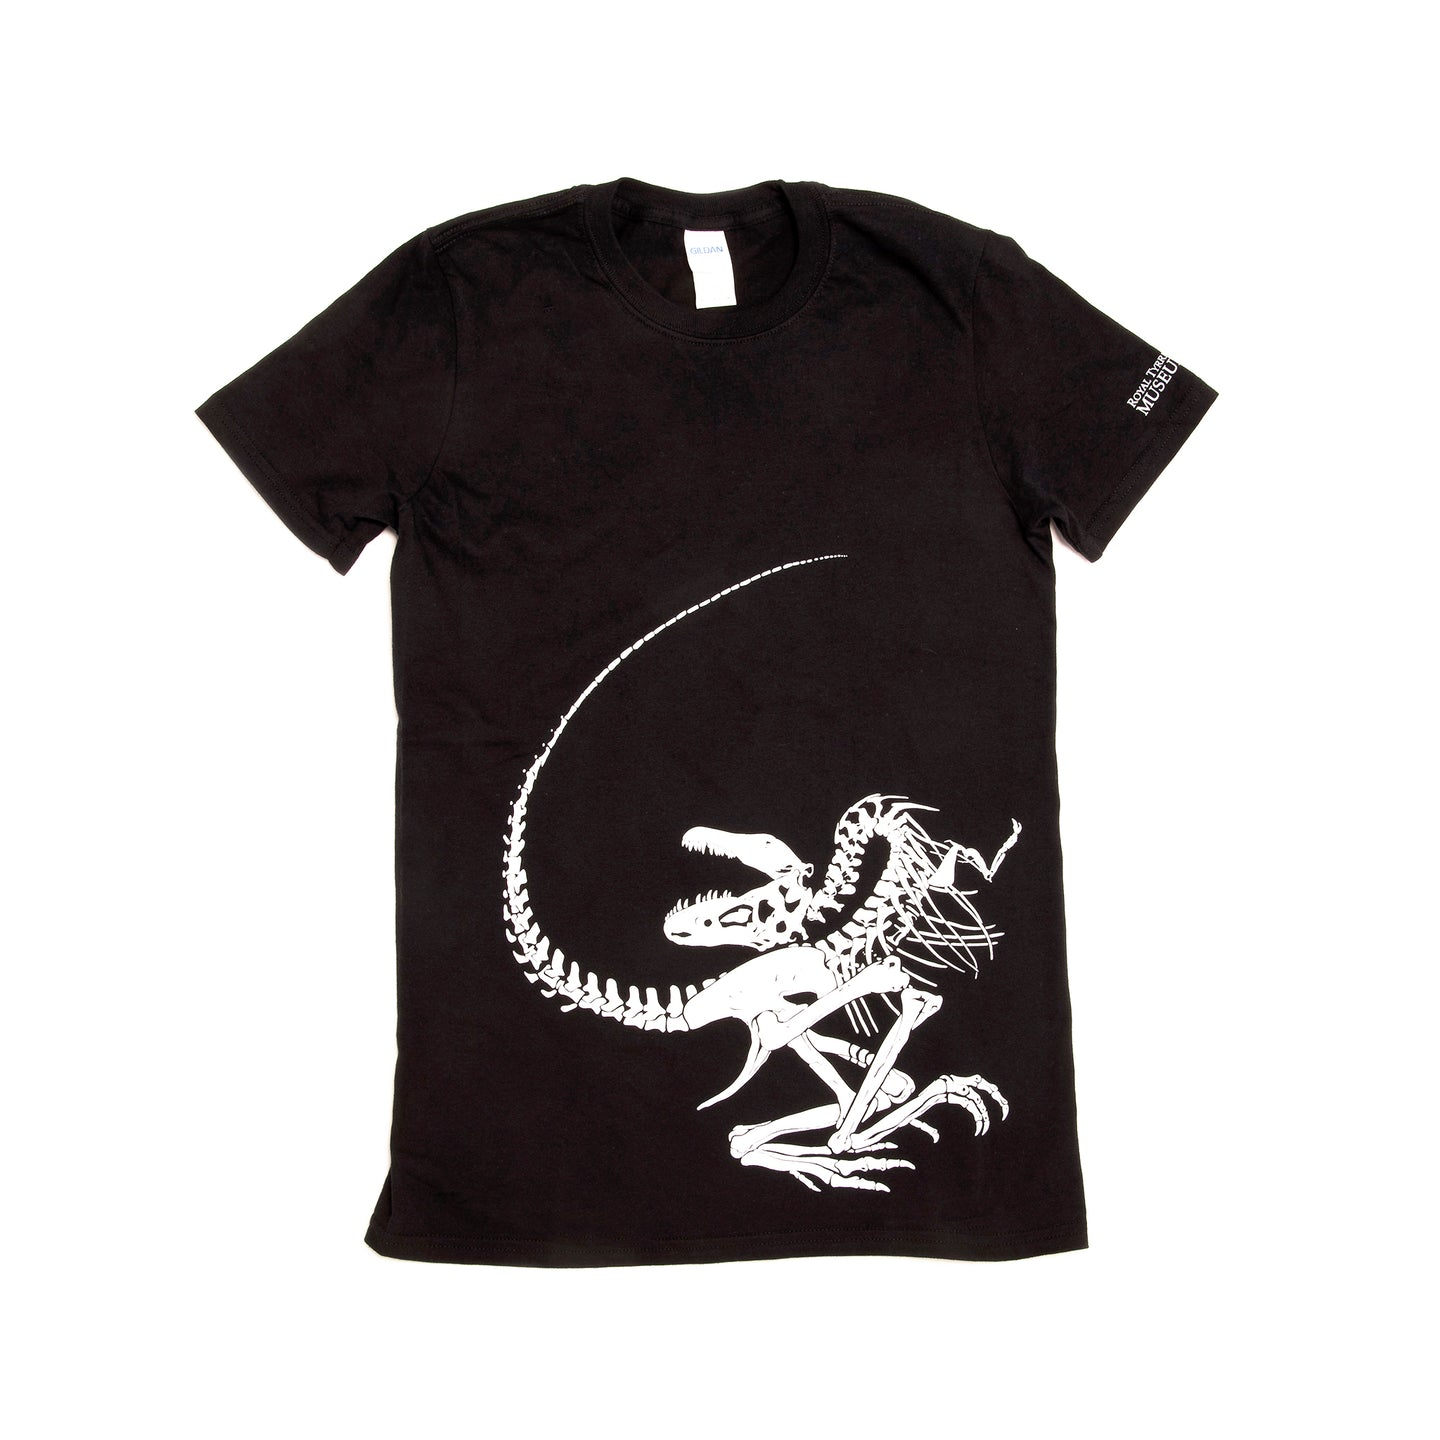 Gorgosaurus Death Pose Adult T-shirt